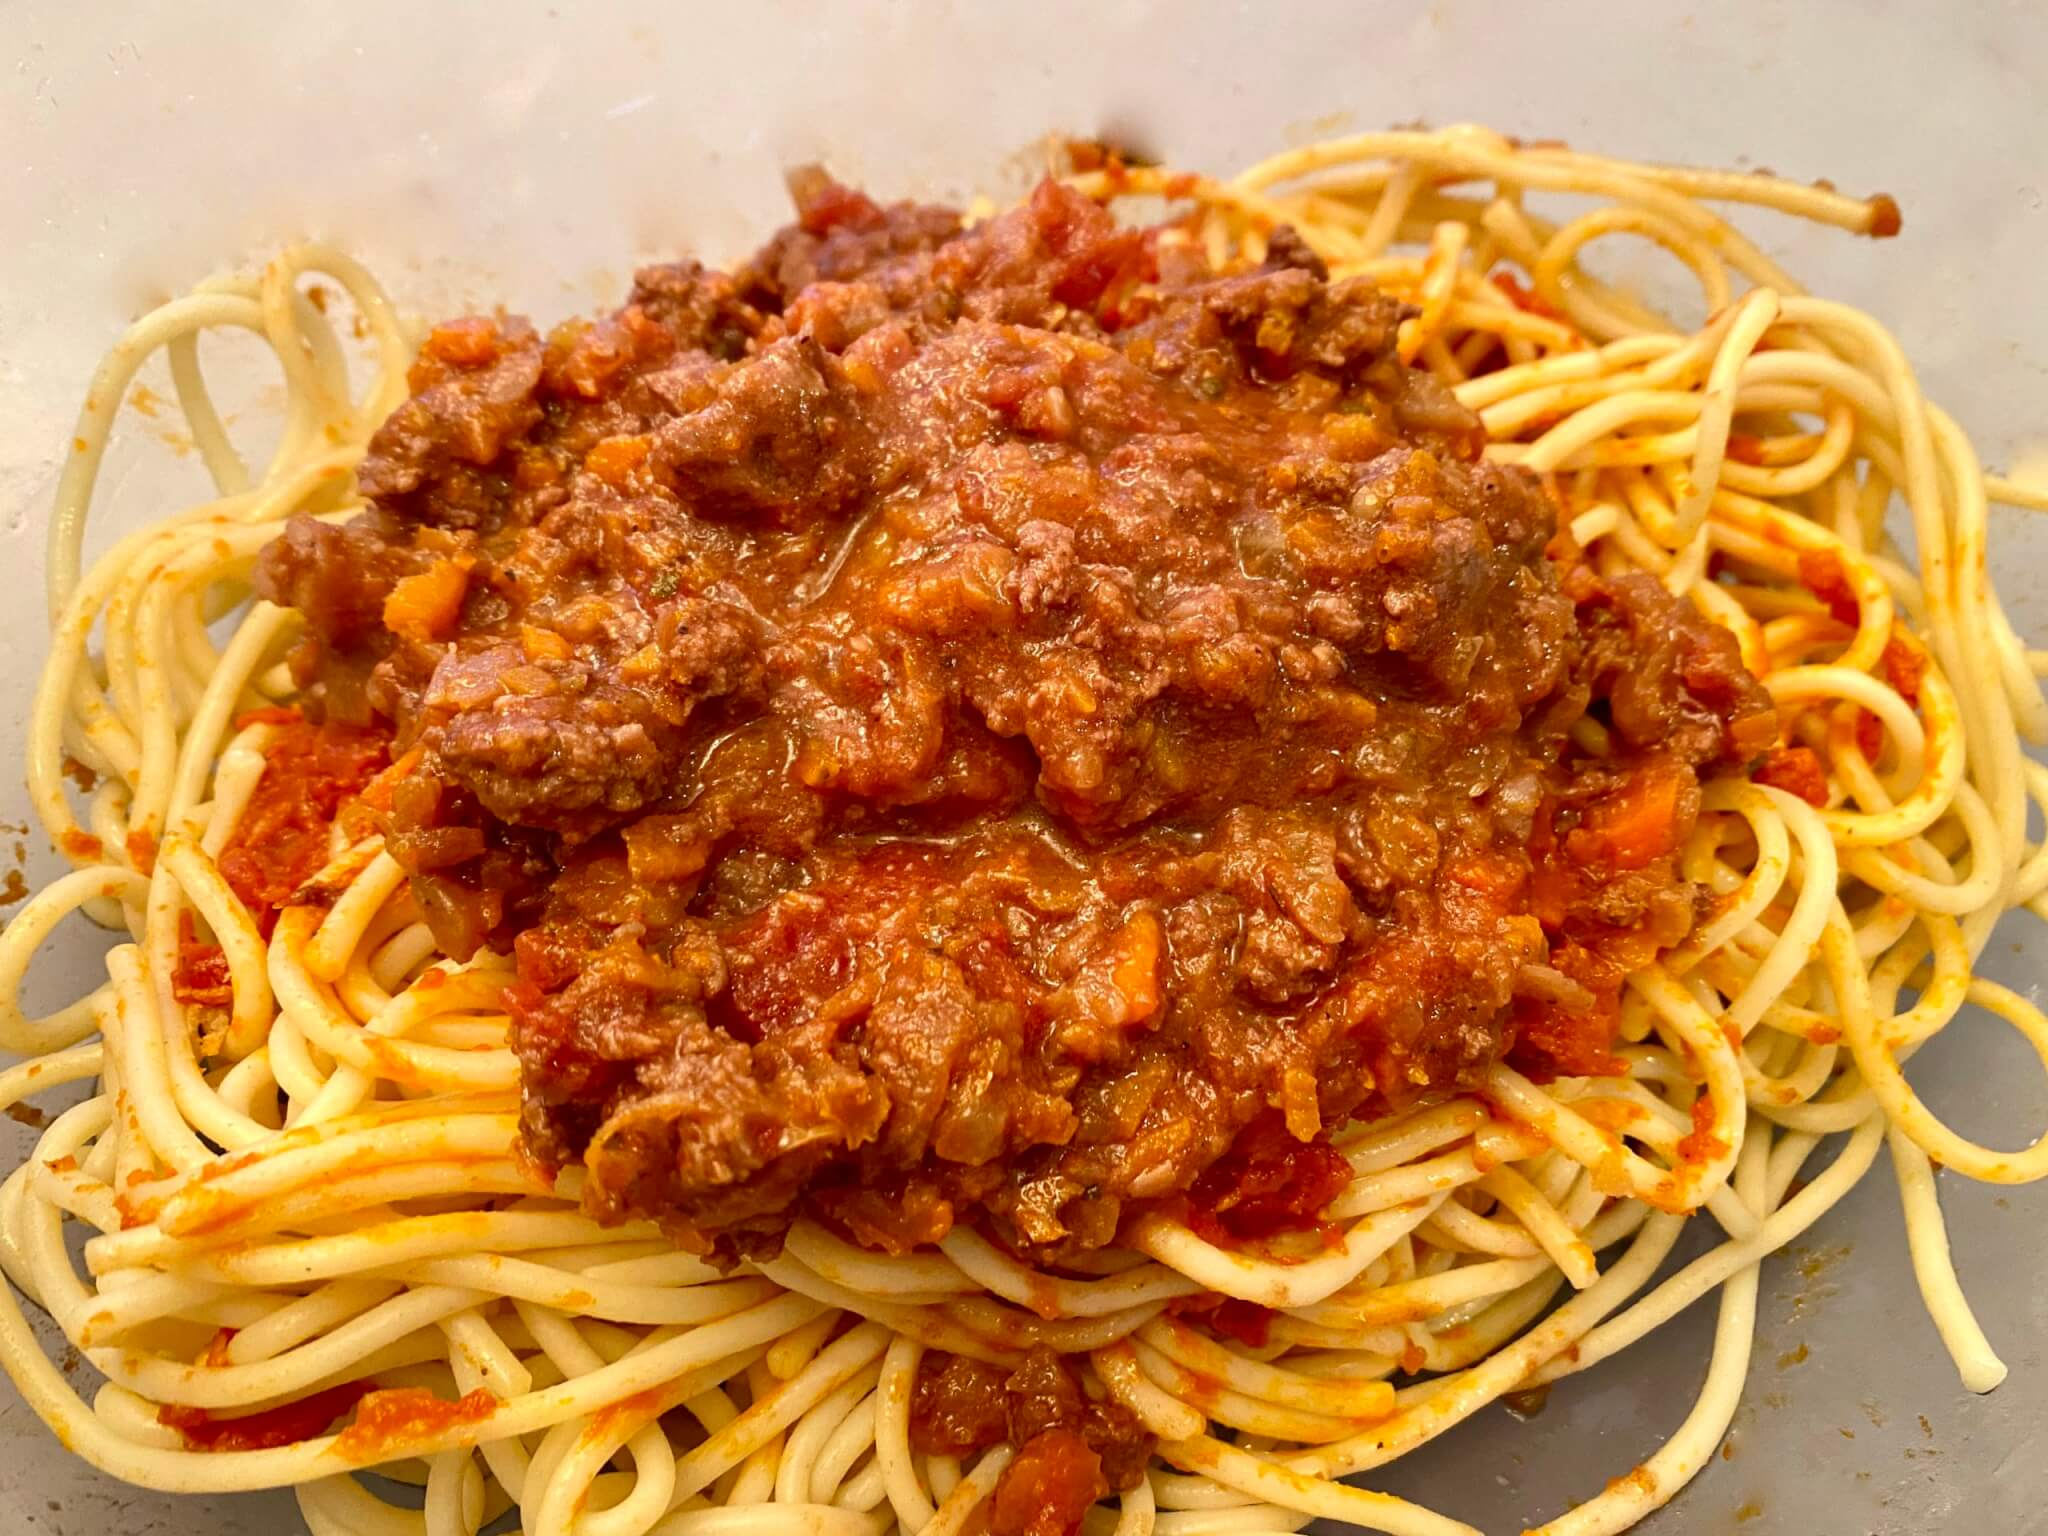 This tomato-based meat sauce is easy to prepare and makes for a memorable pasta dinner. It freezes well, too!